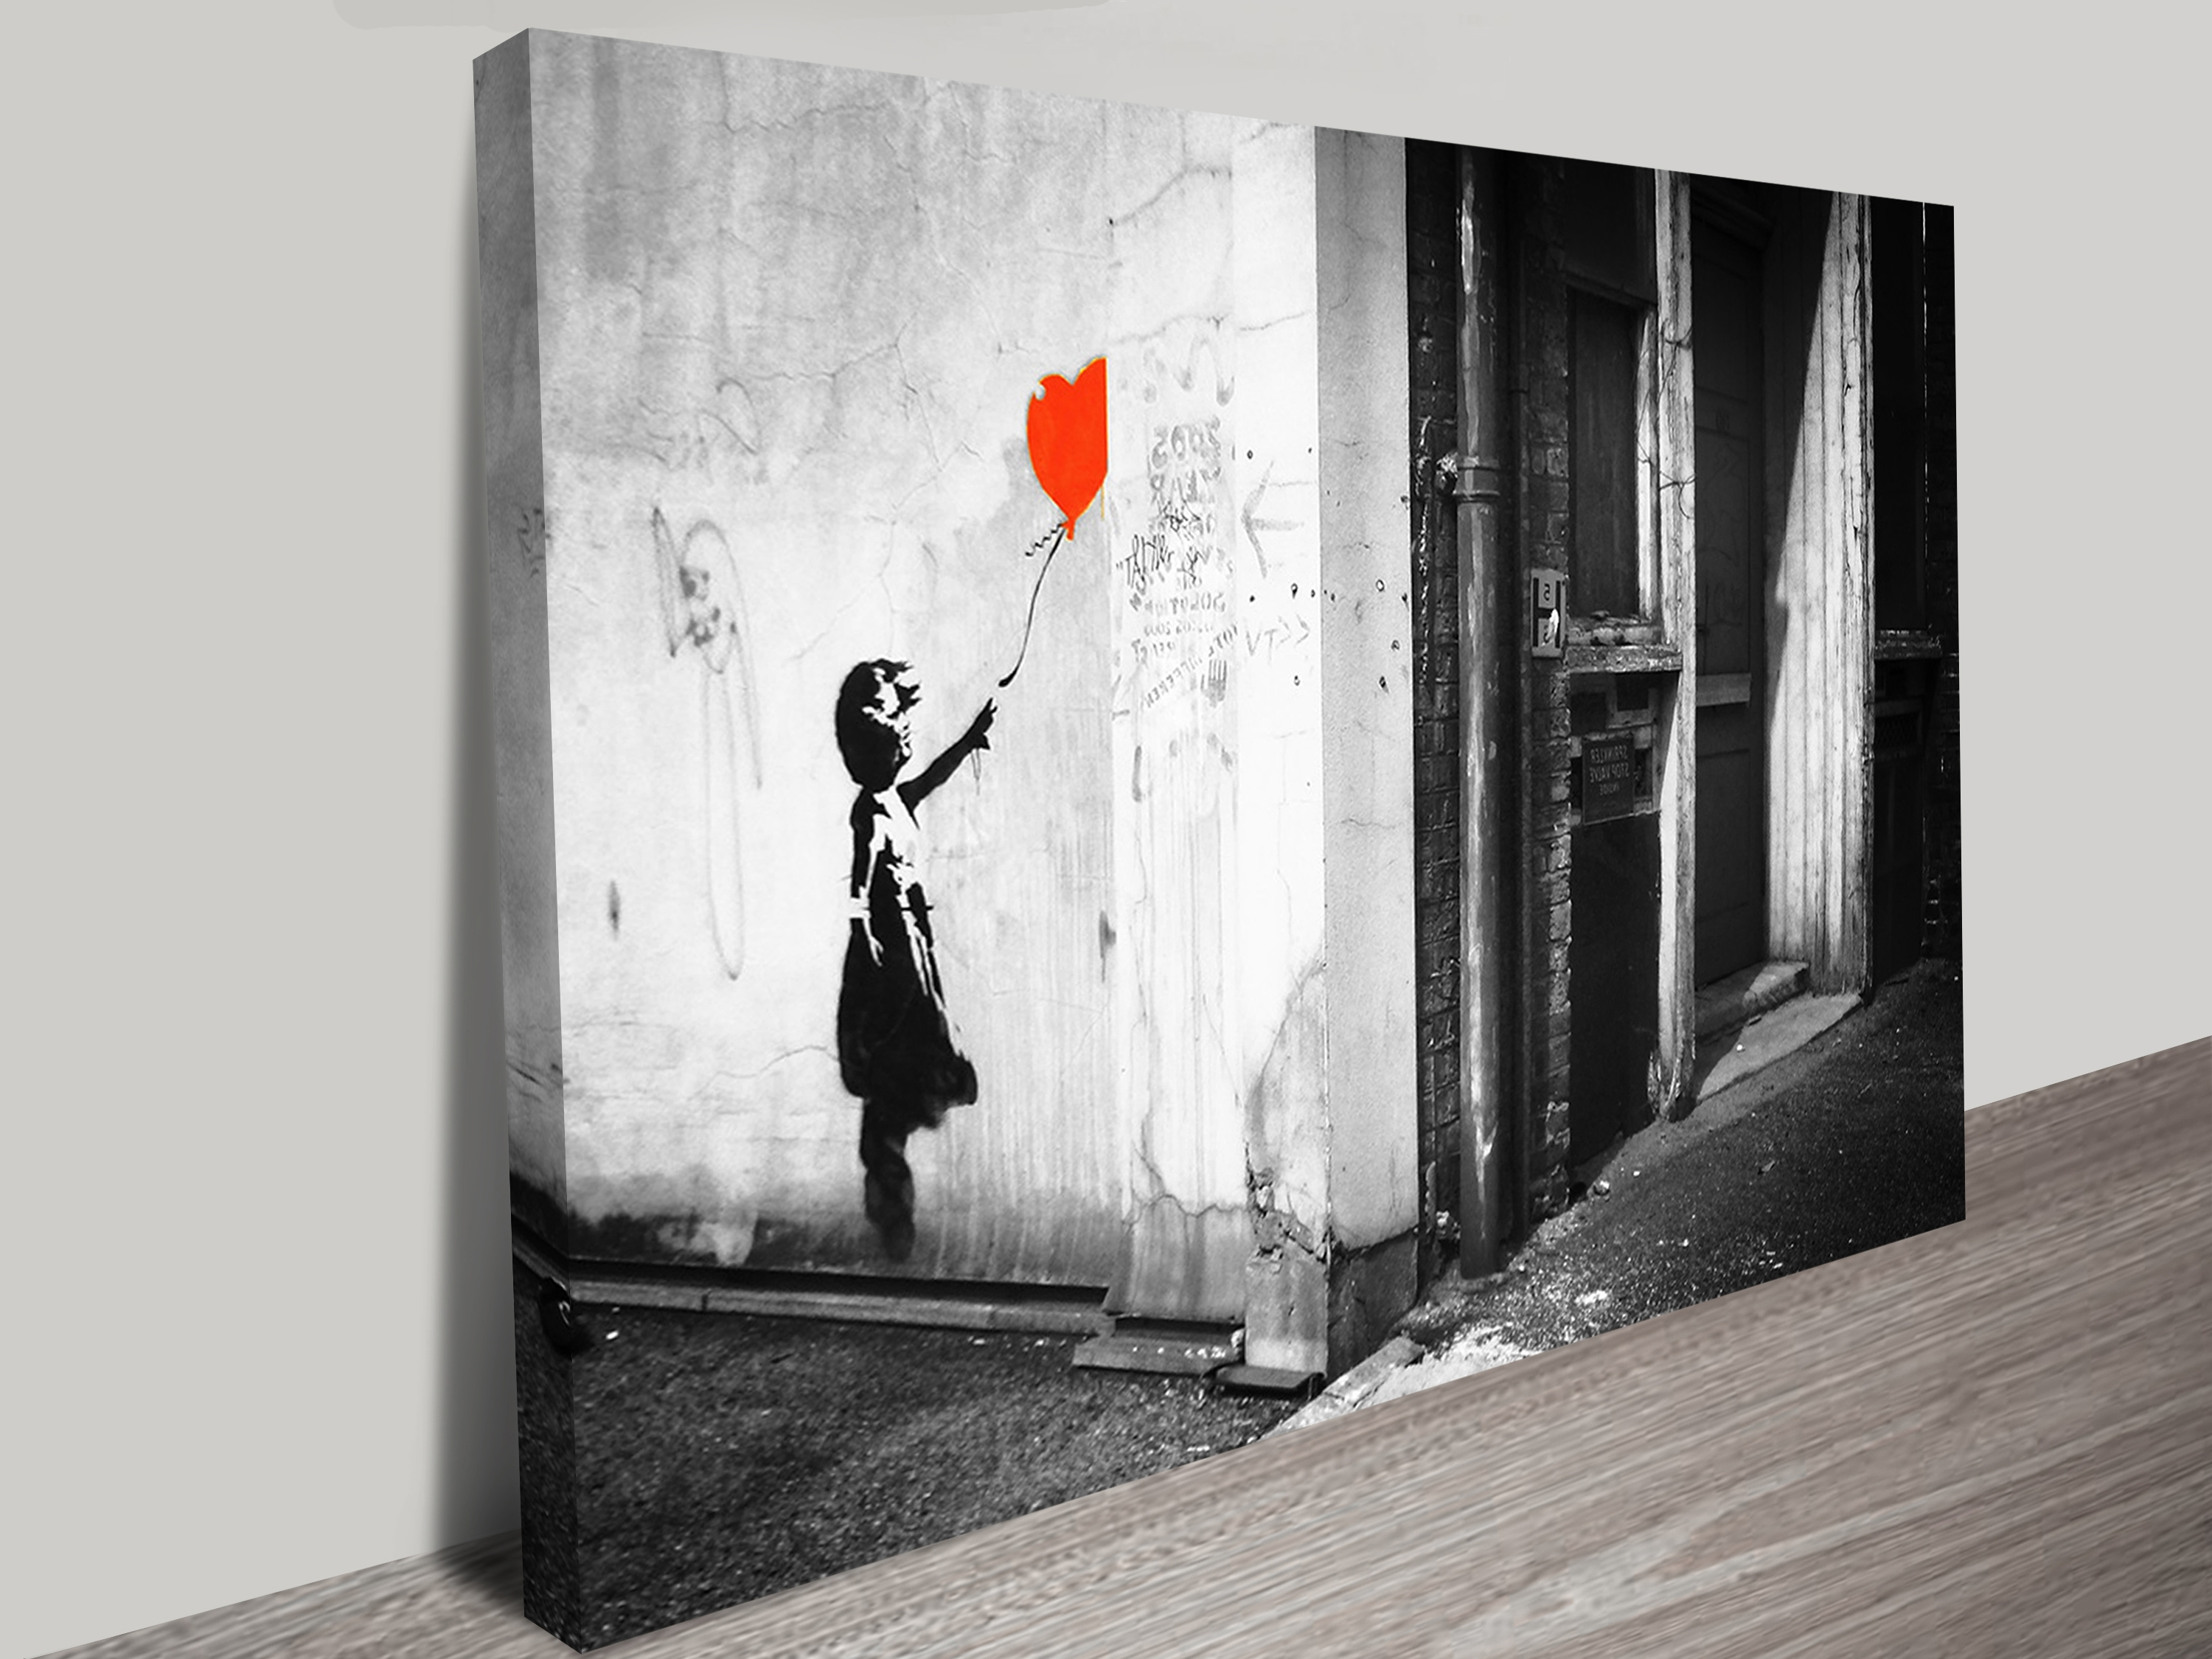 Canvas Wall Art In Canada For Most Recent Furniture Idea: Amusing Canvas Art To Complete Balloon Girl Print (View 2 of 15)